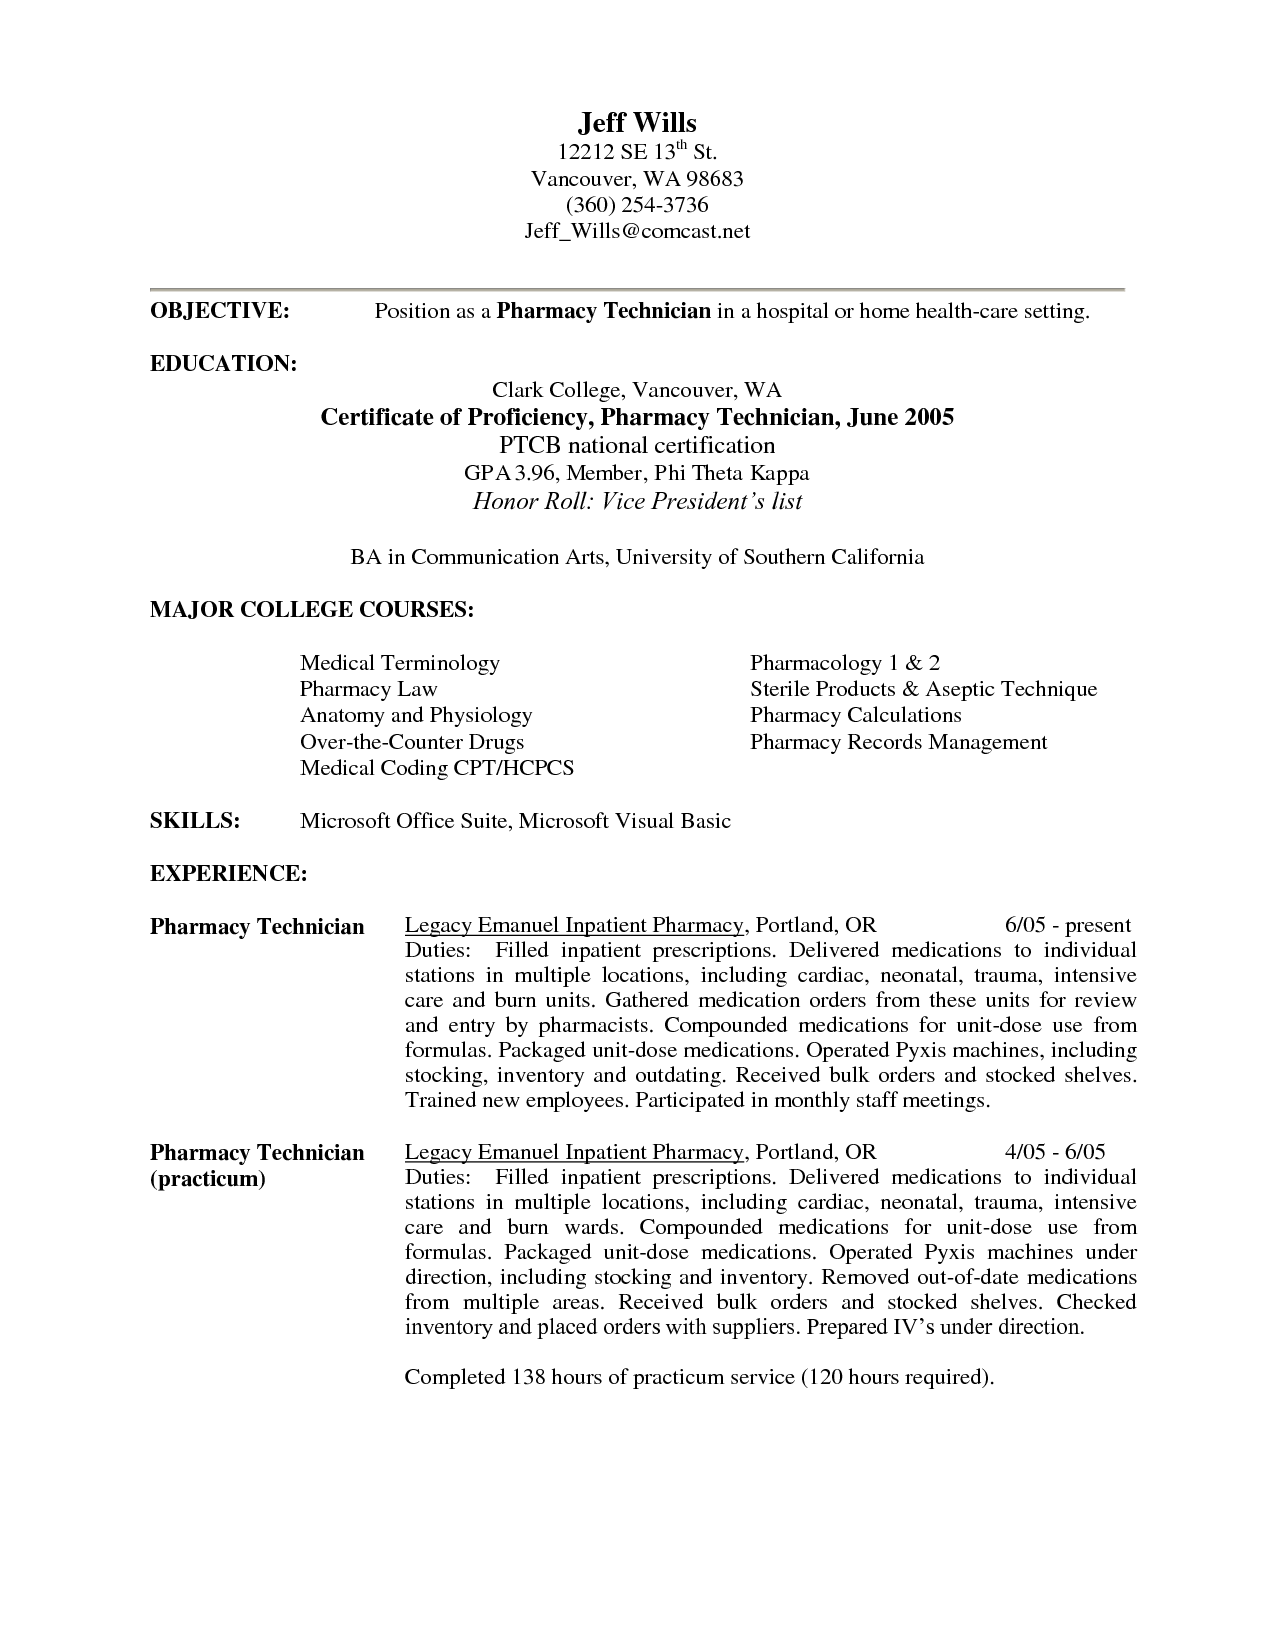 Wonderful Pharmacy Technician Objective Resume Samples Inside Pharmacy Technician Sample Resume